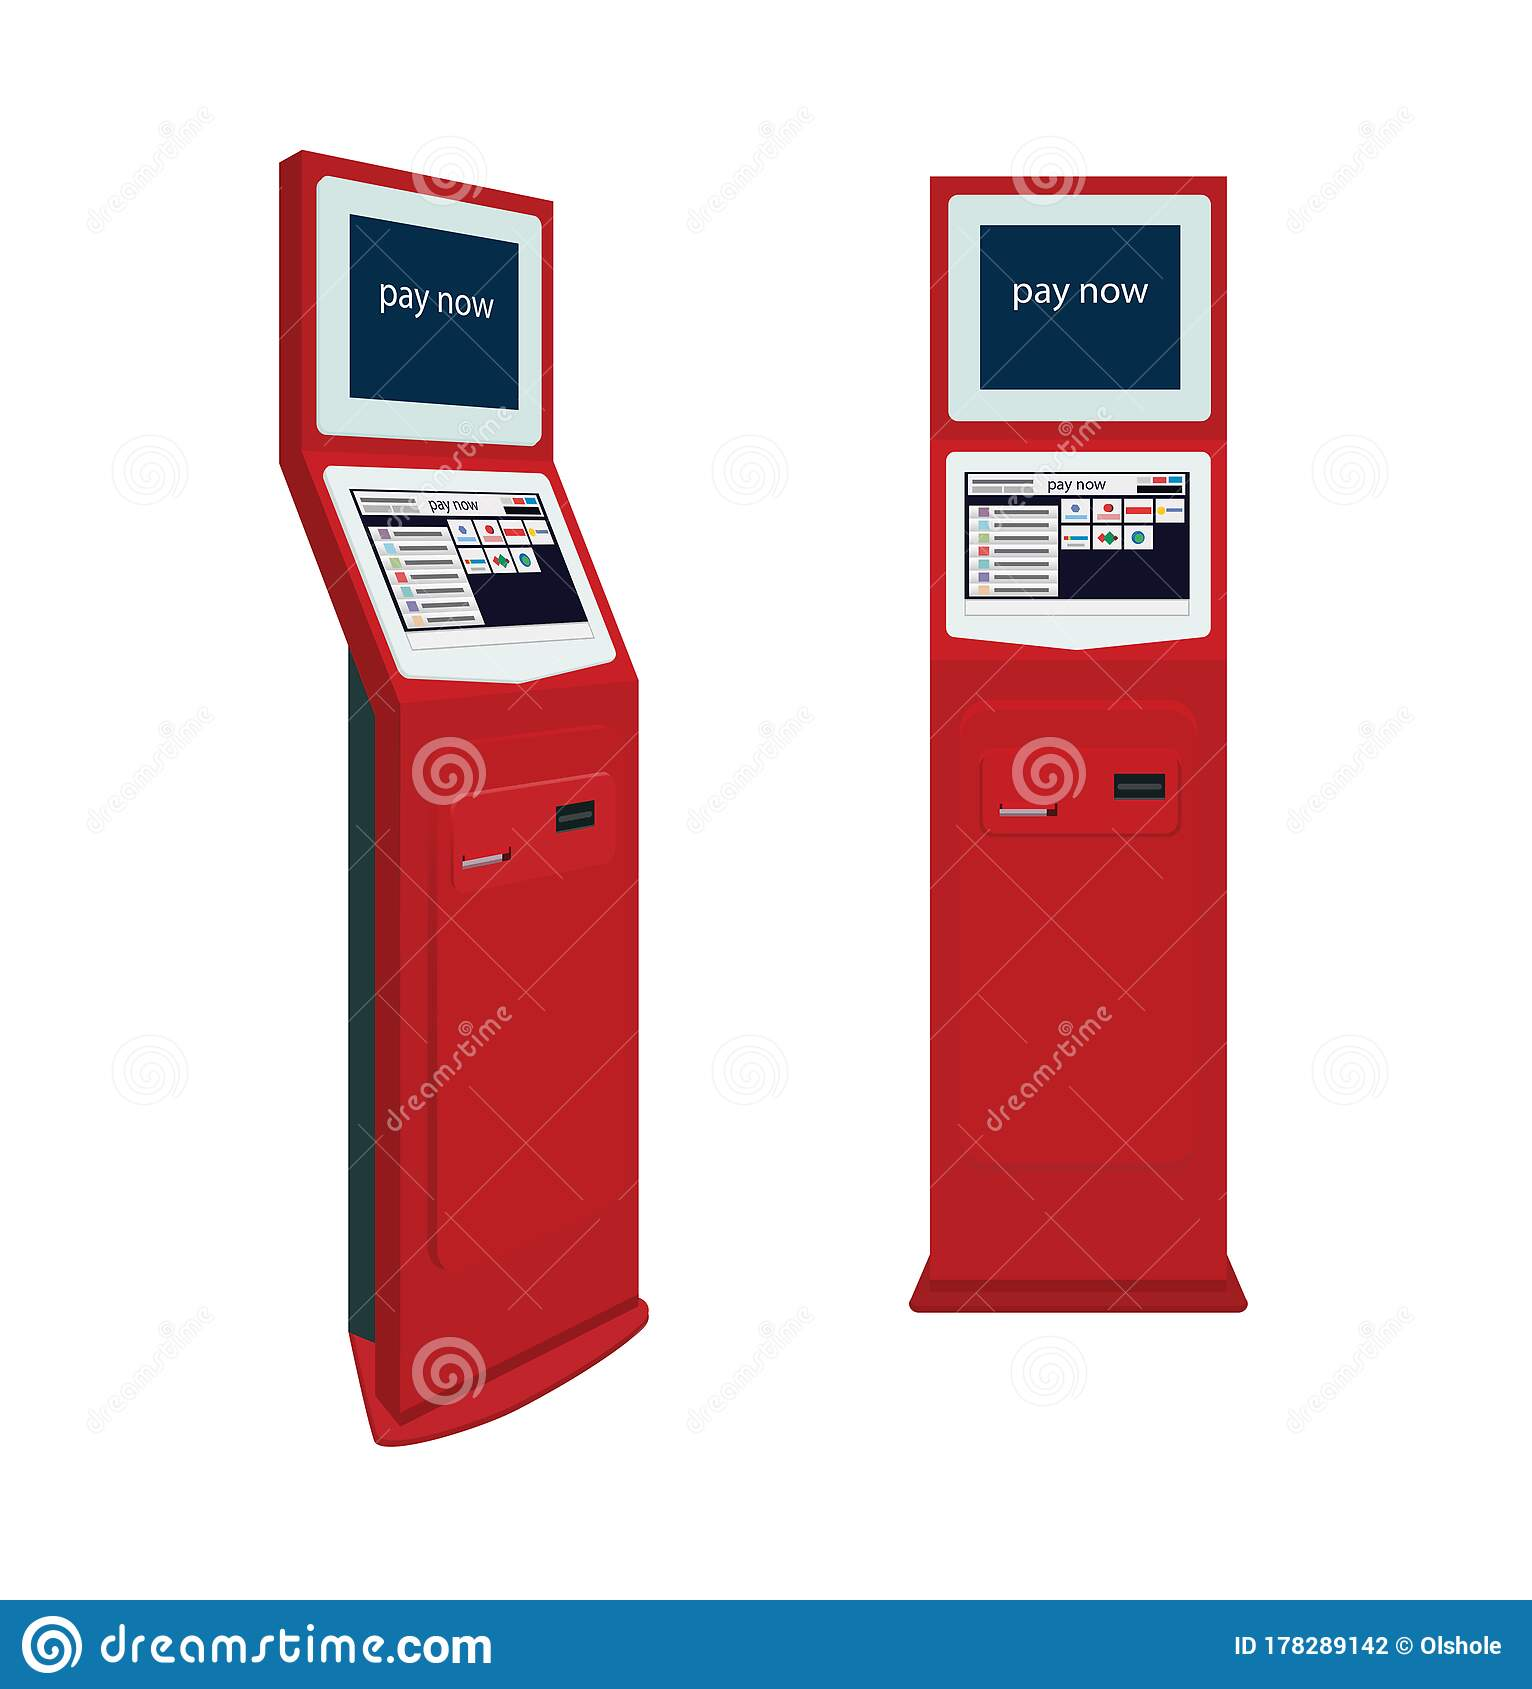 online payment systems and selfservice payments terminals